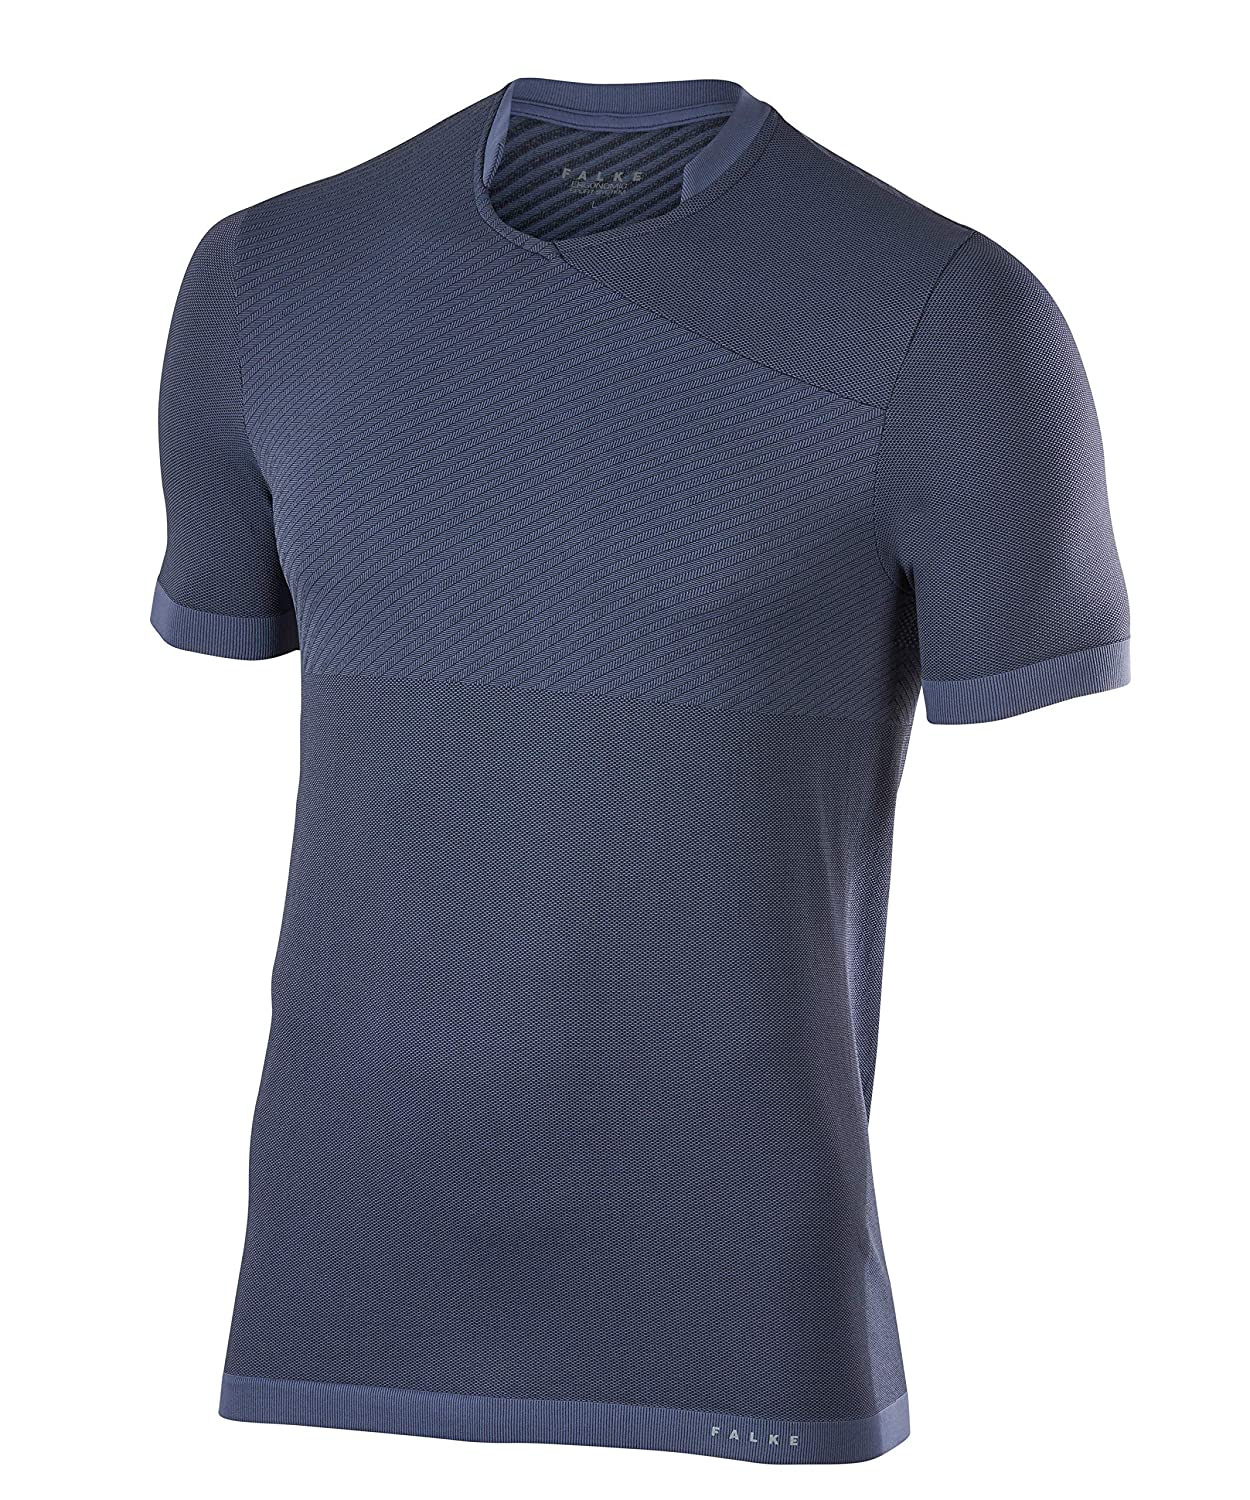 FALKE Mens Fitness T-Shirt Captin Blue